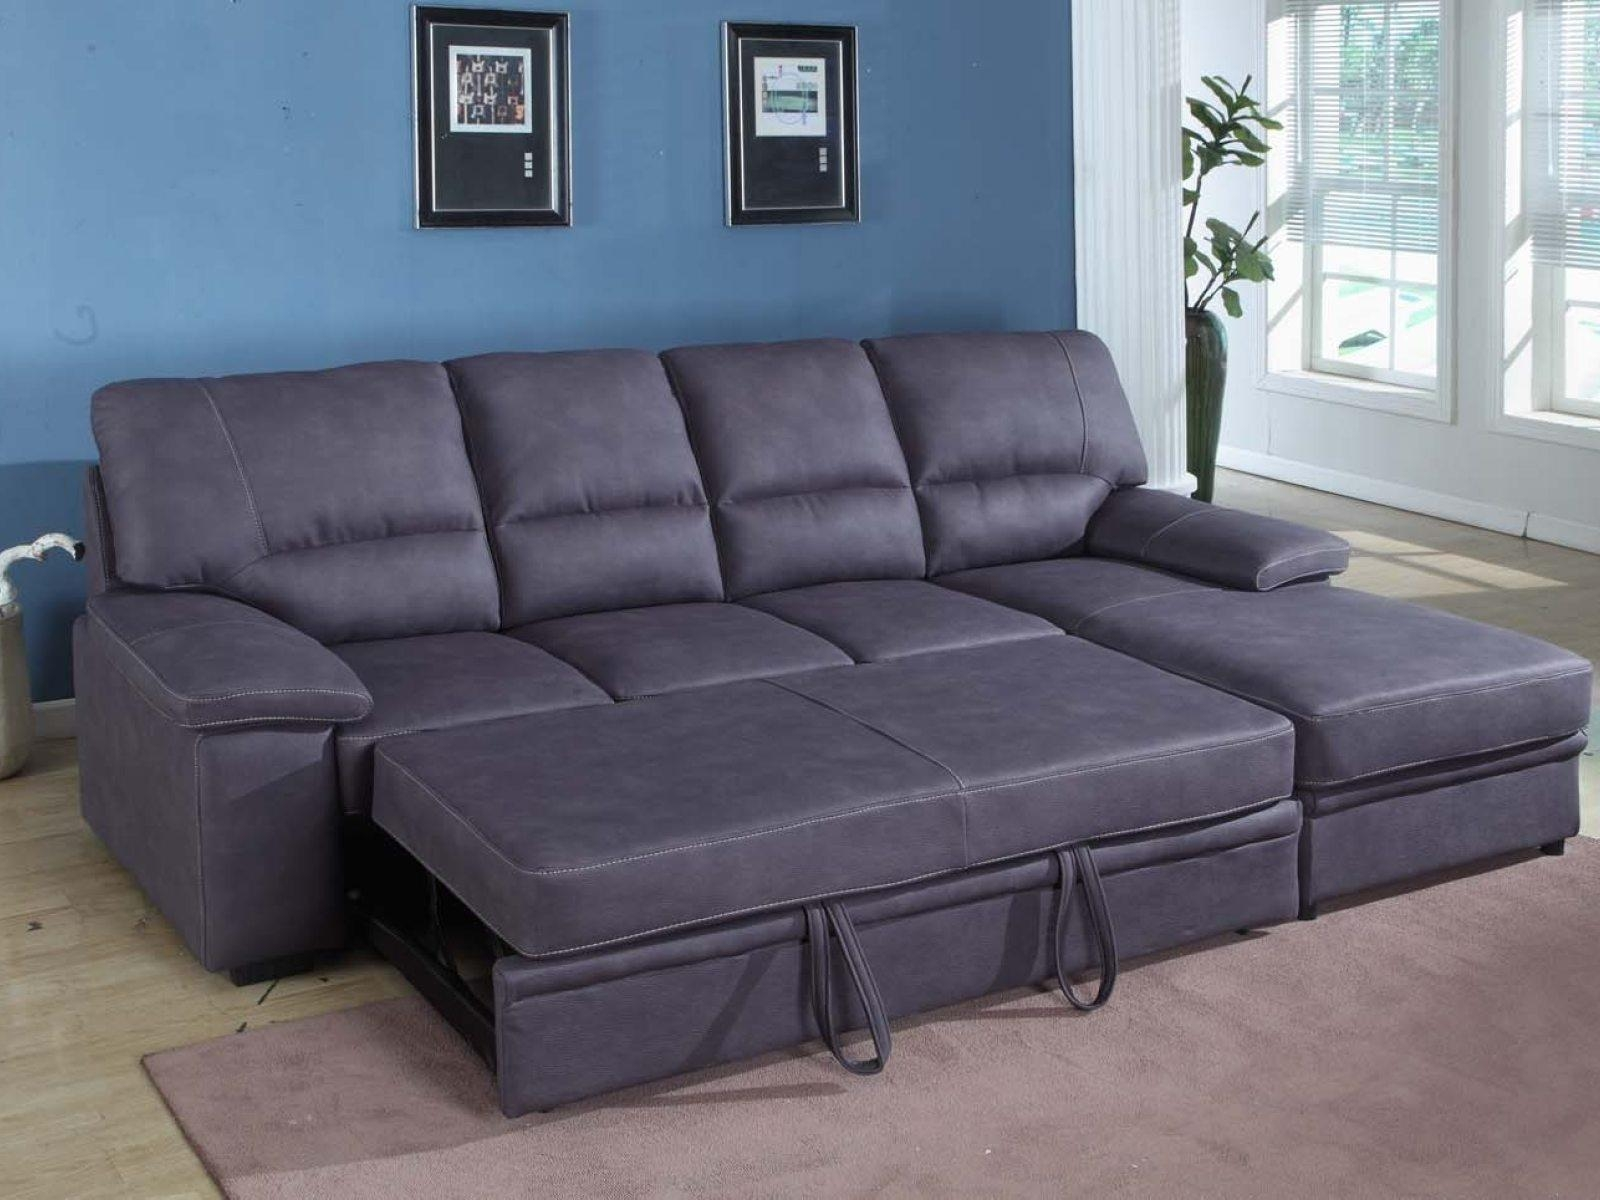 ▻ Sofa : 14 Brilliant Sectional Sleeper Sofa With Chaise Cool Throughout Sectional Sleeper Sofas With Chaise (Image 2 of 20)